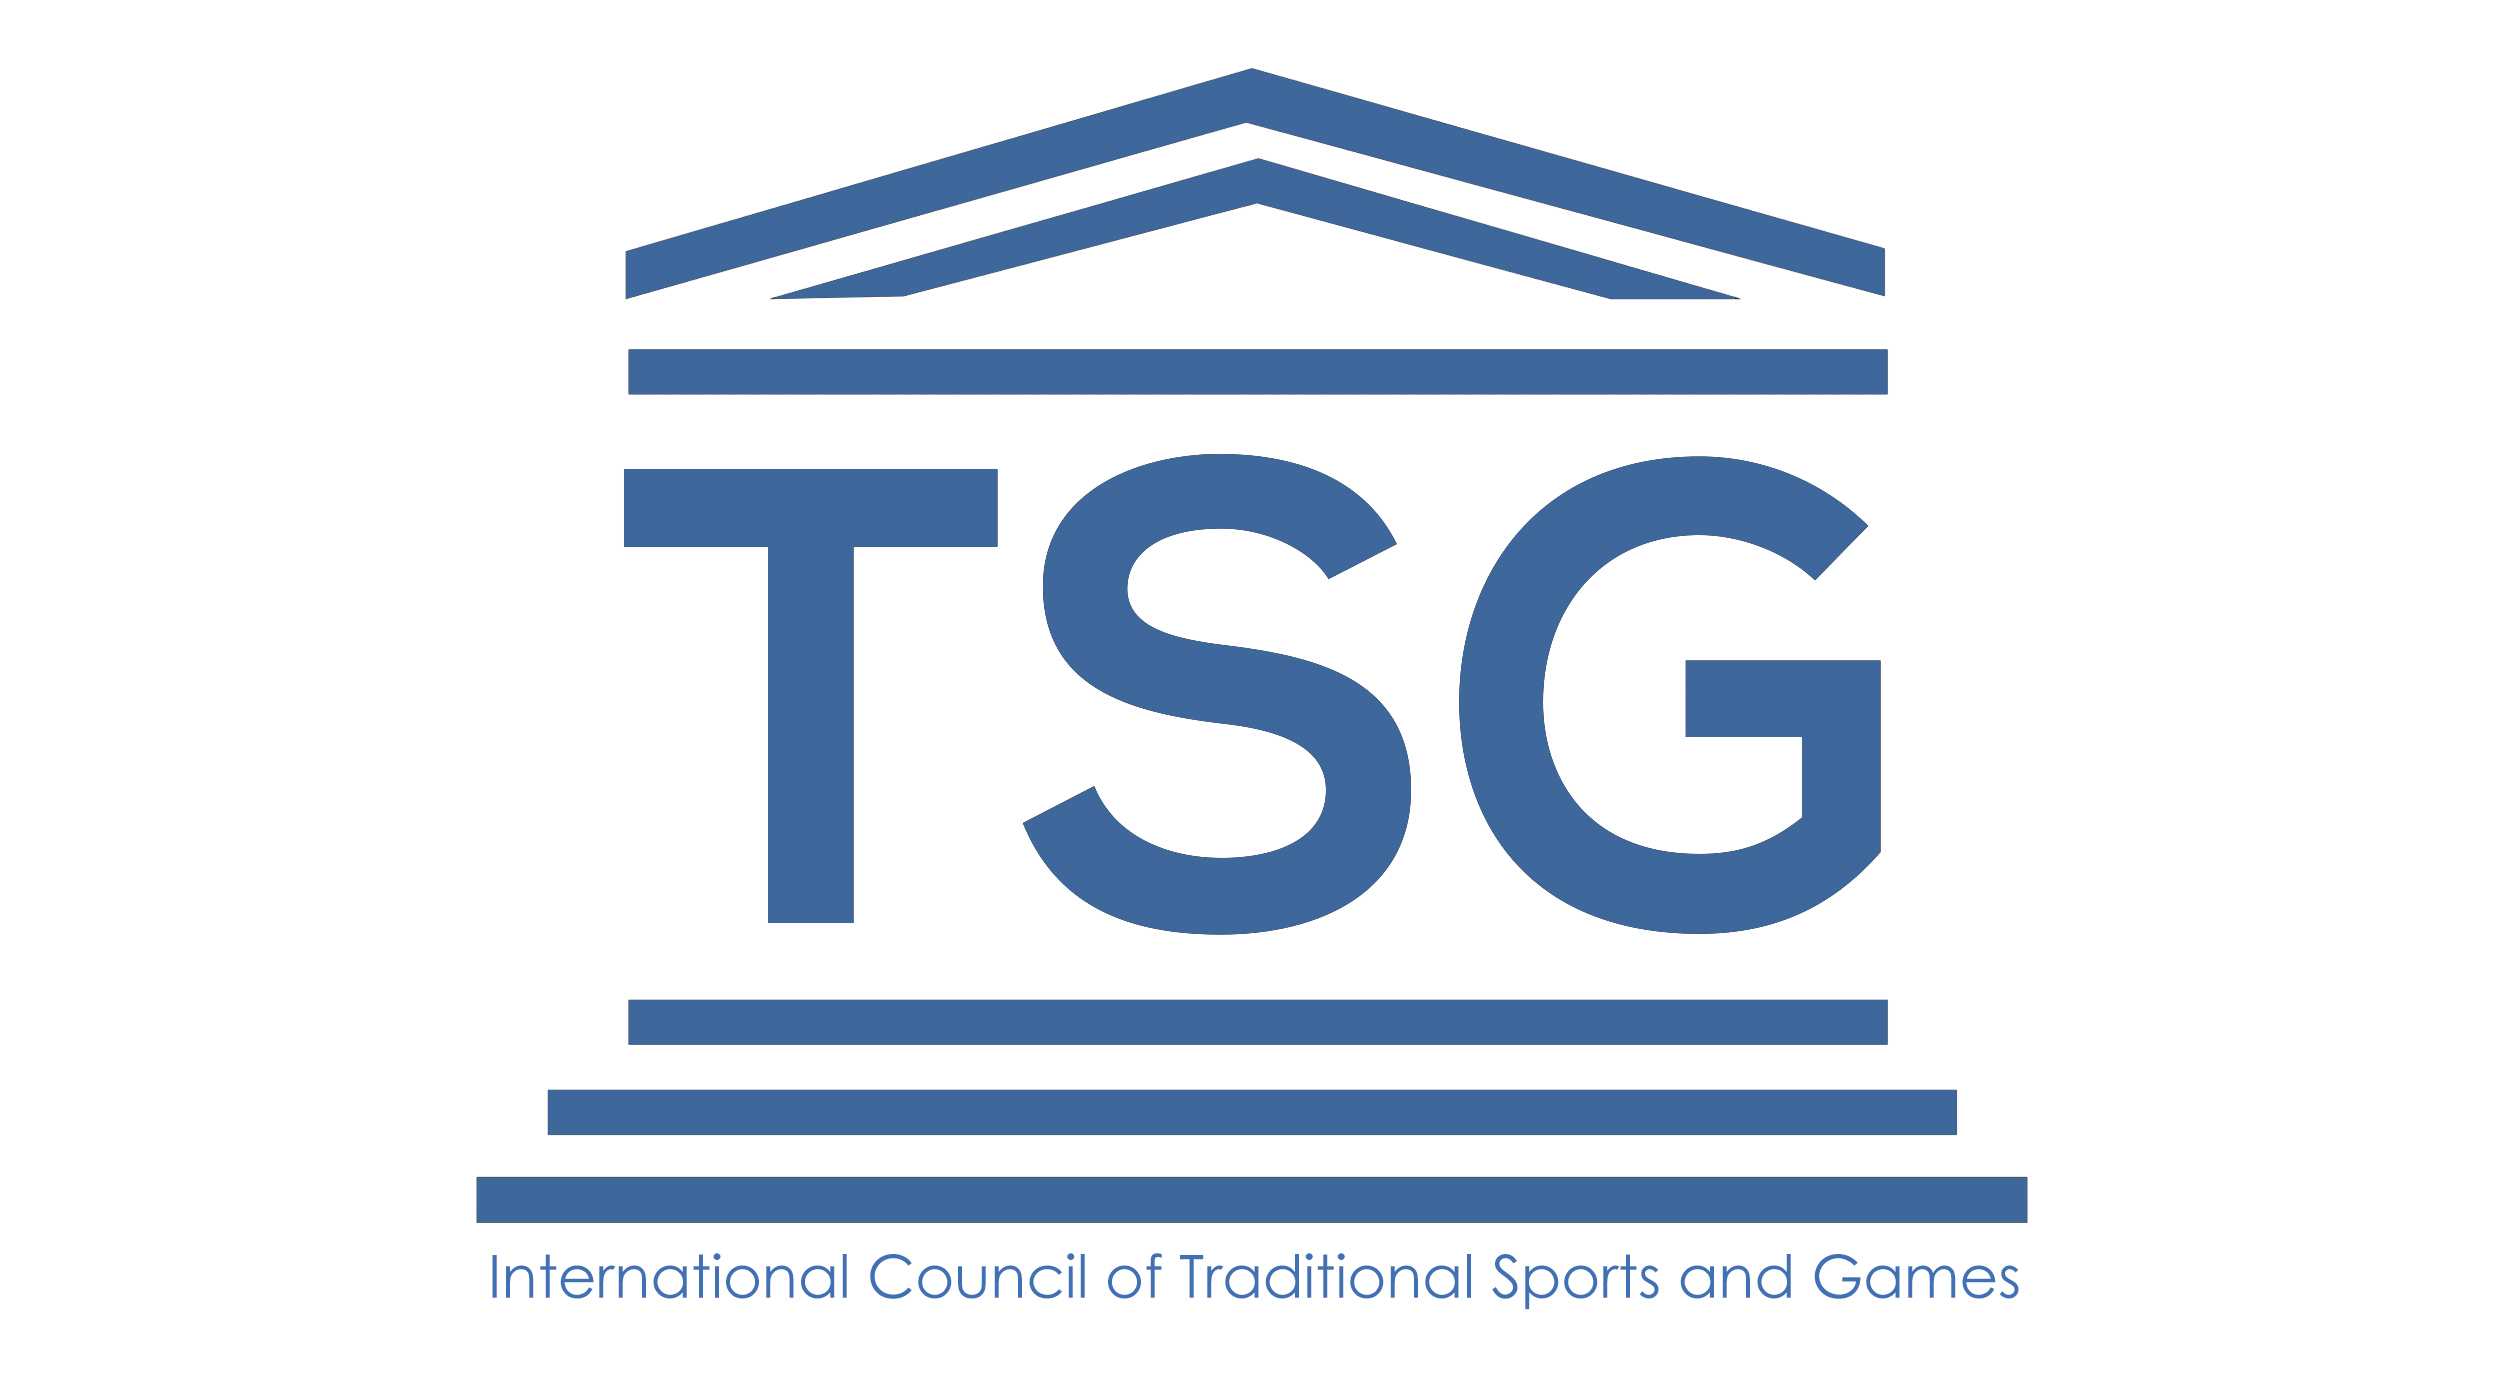 Traditional and indigenous sports recognised by ICTSG